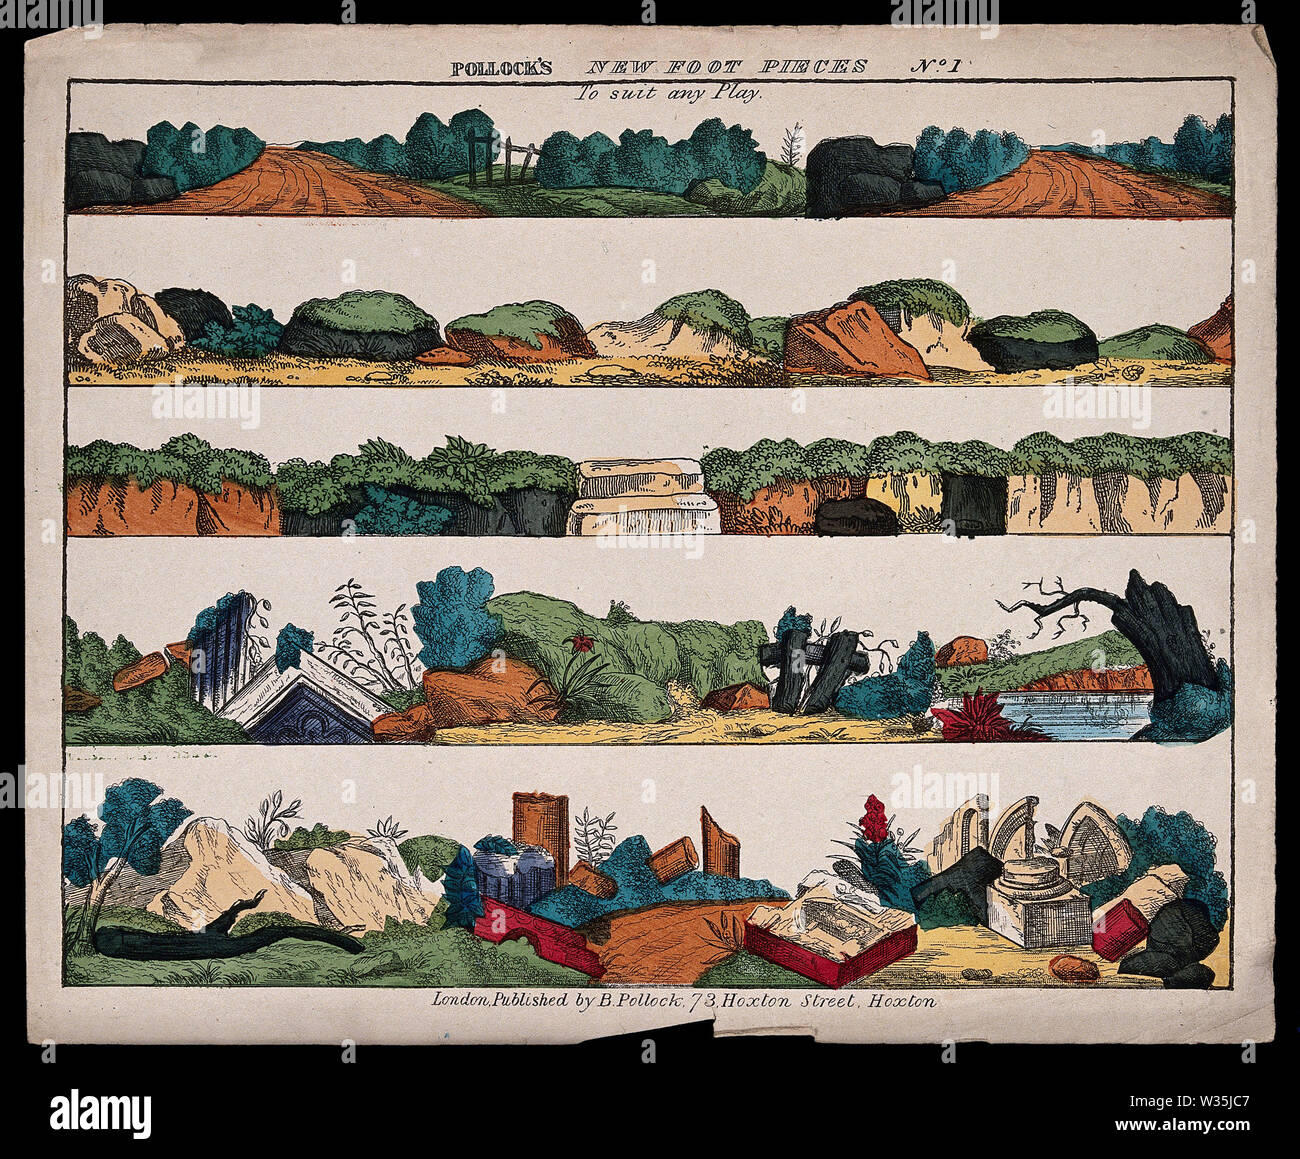 Scenes to be used in a children's theatre production. Coloured lithograph. - Stock Image